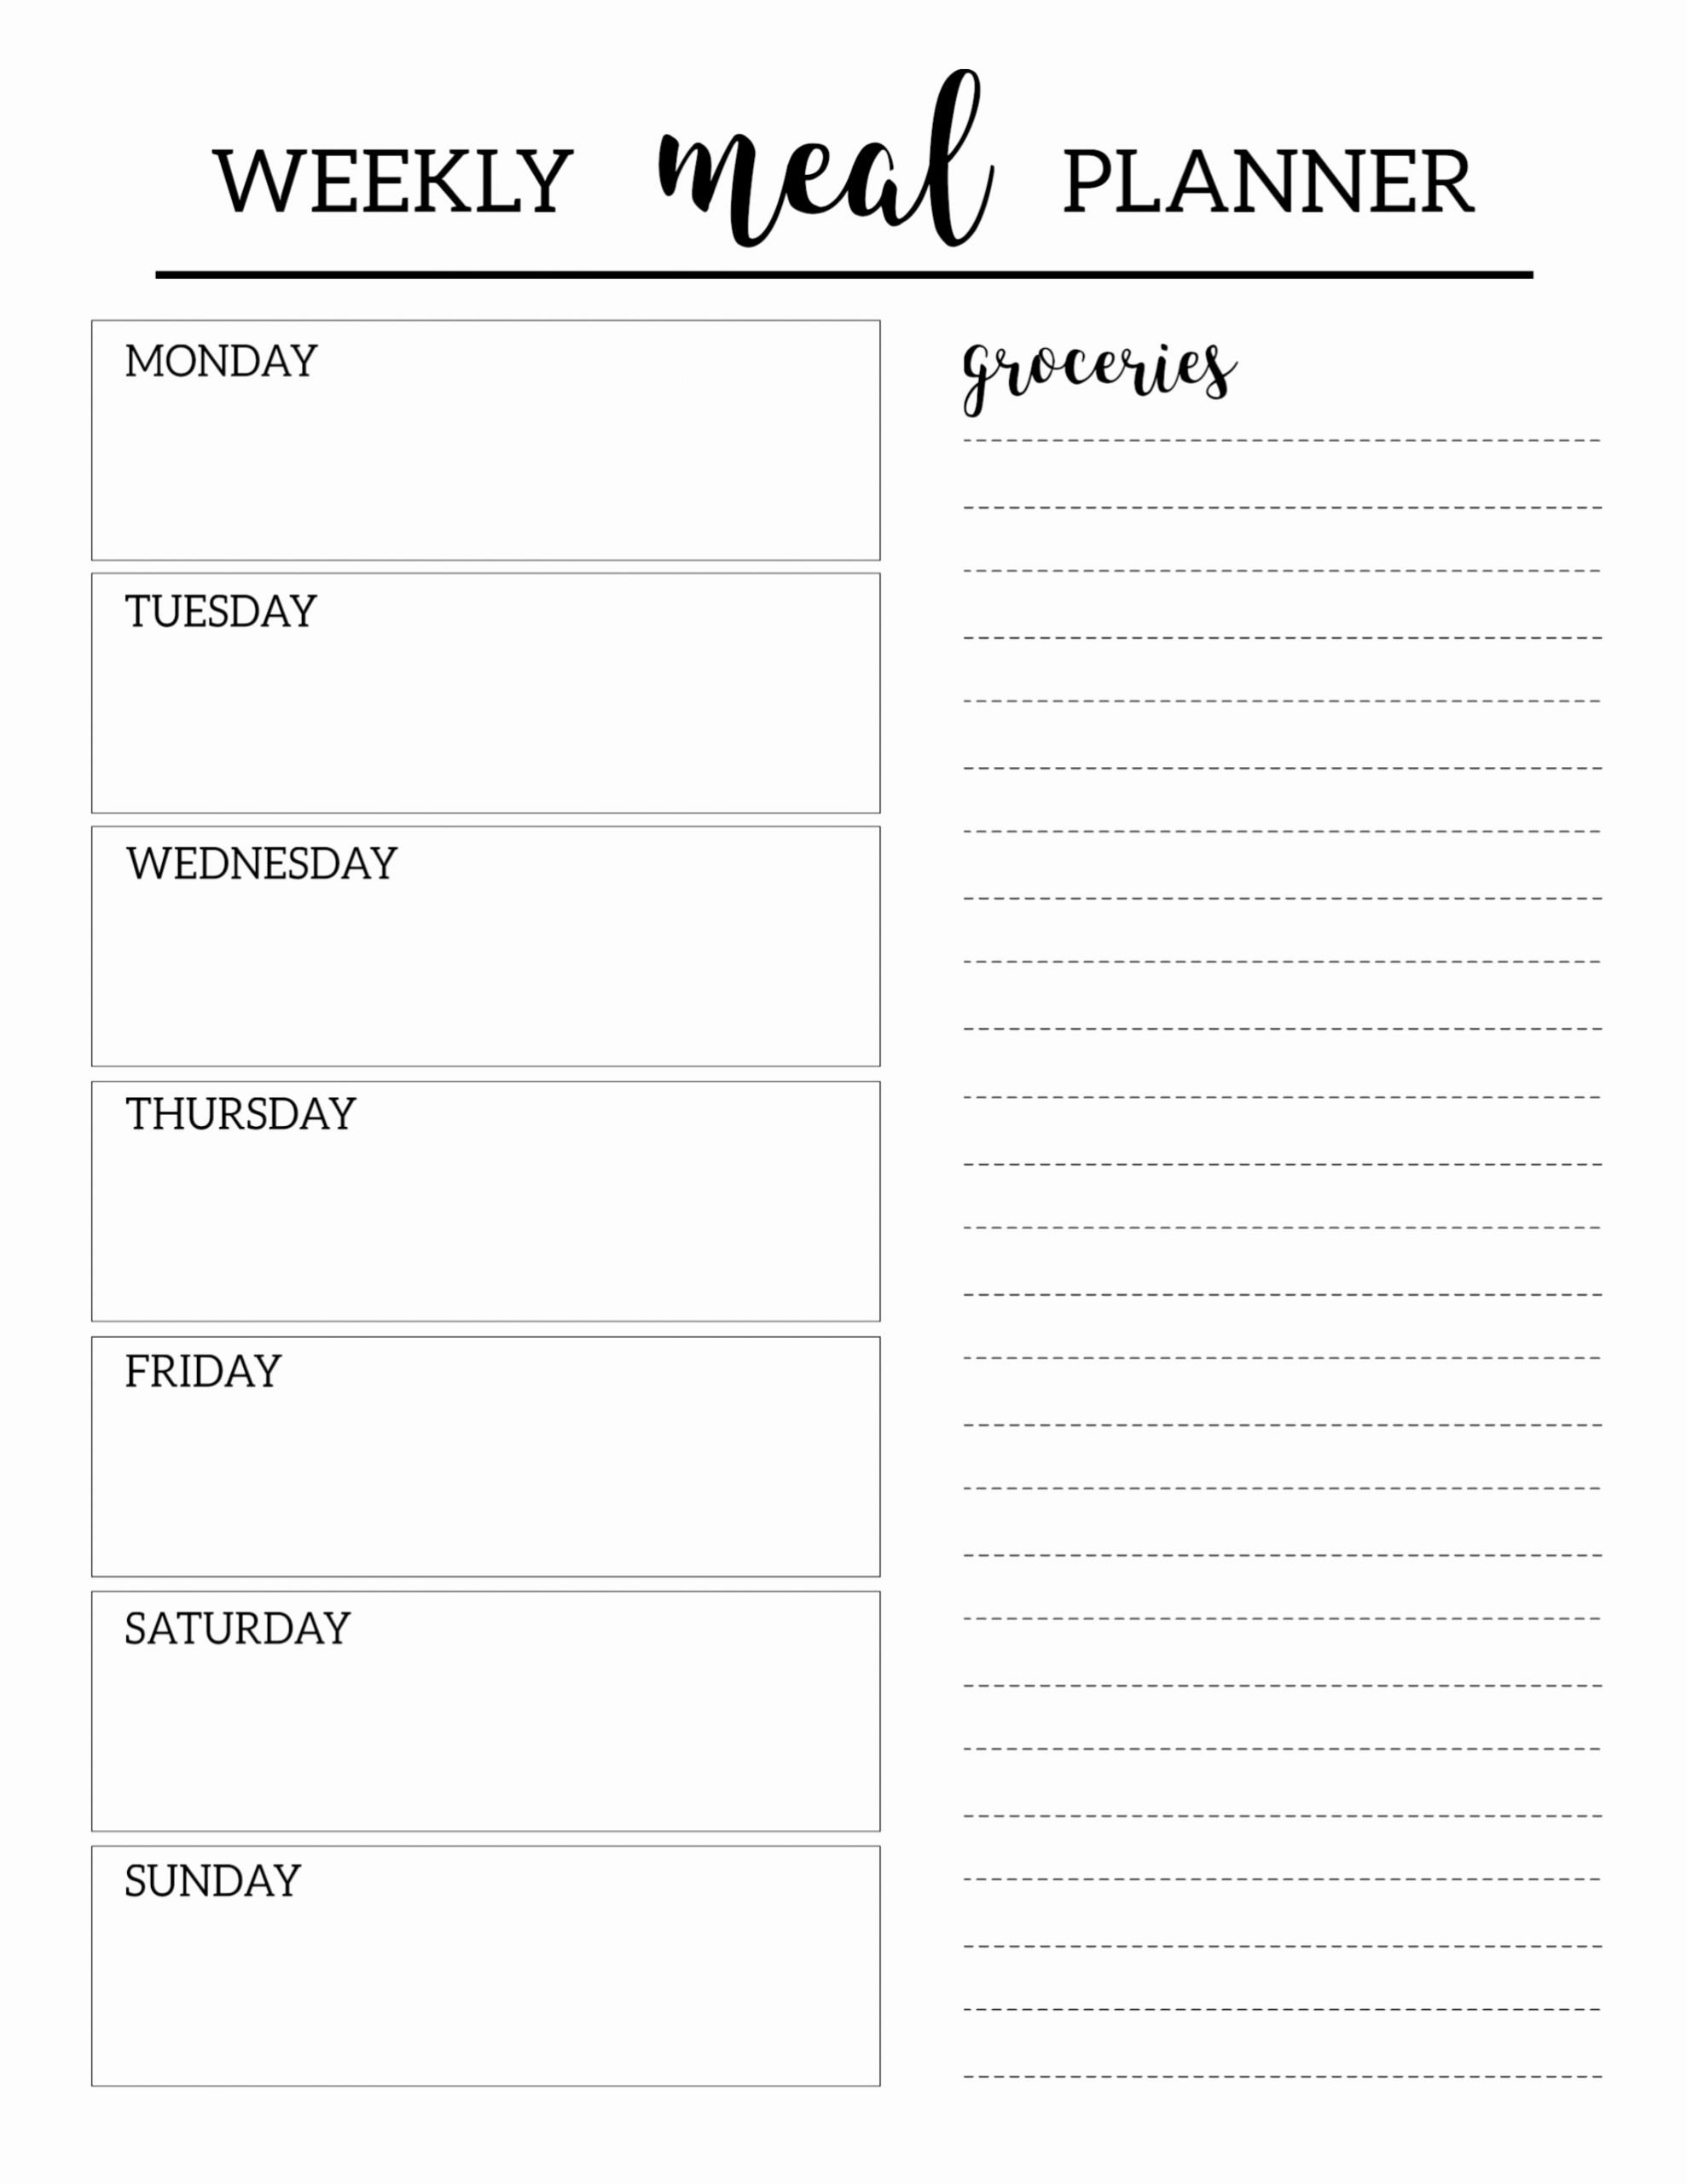 Weekly Meal Planner Template Printable New Free Printable Meal Planner Template Paper Trail Design